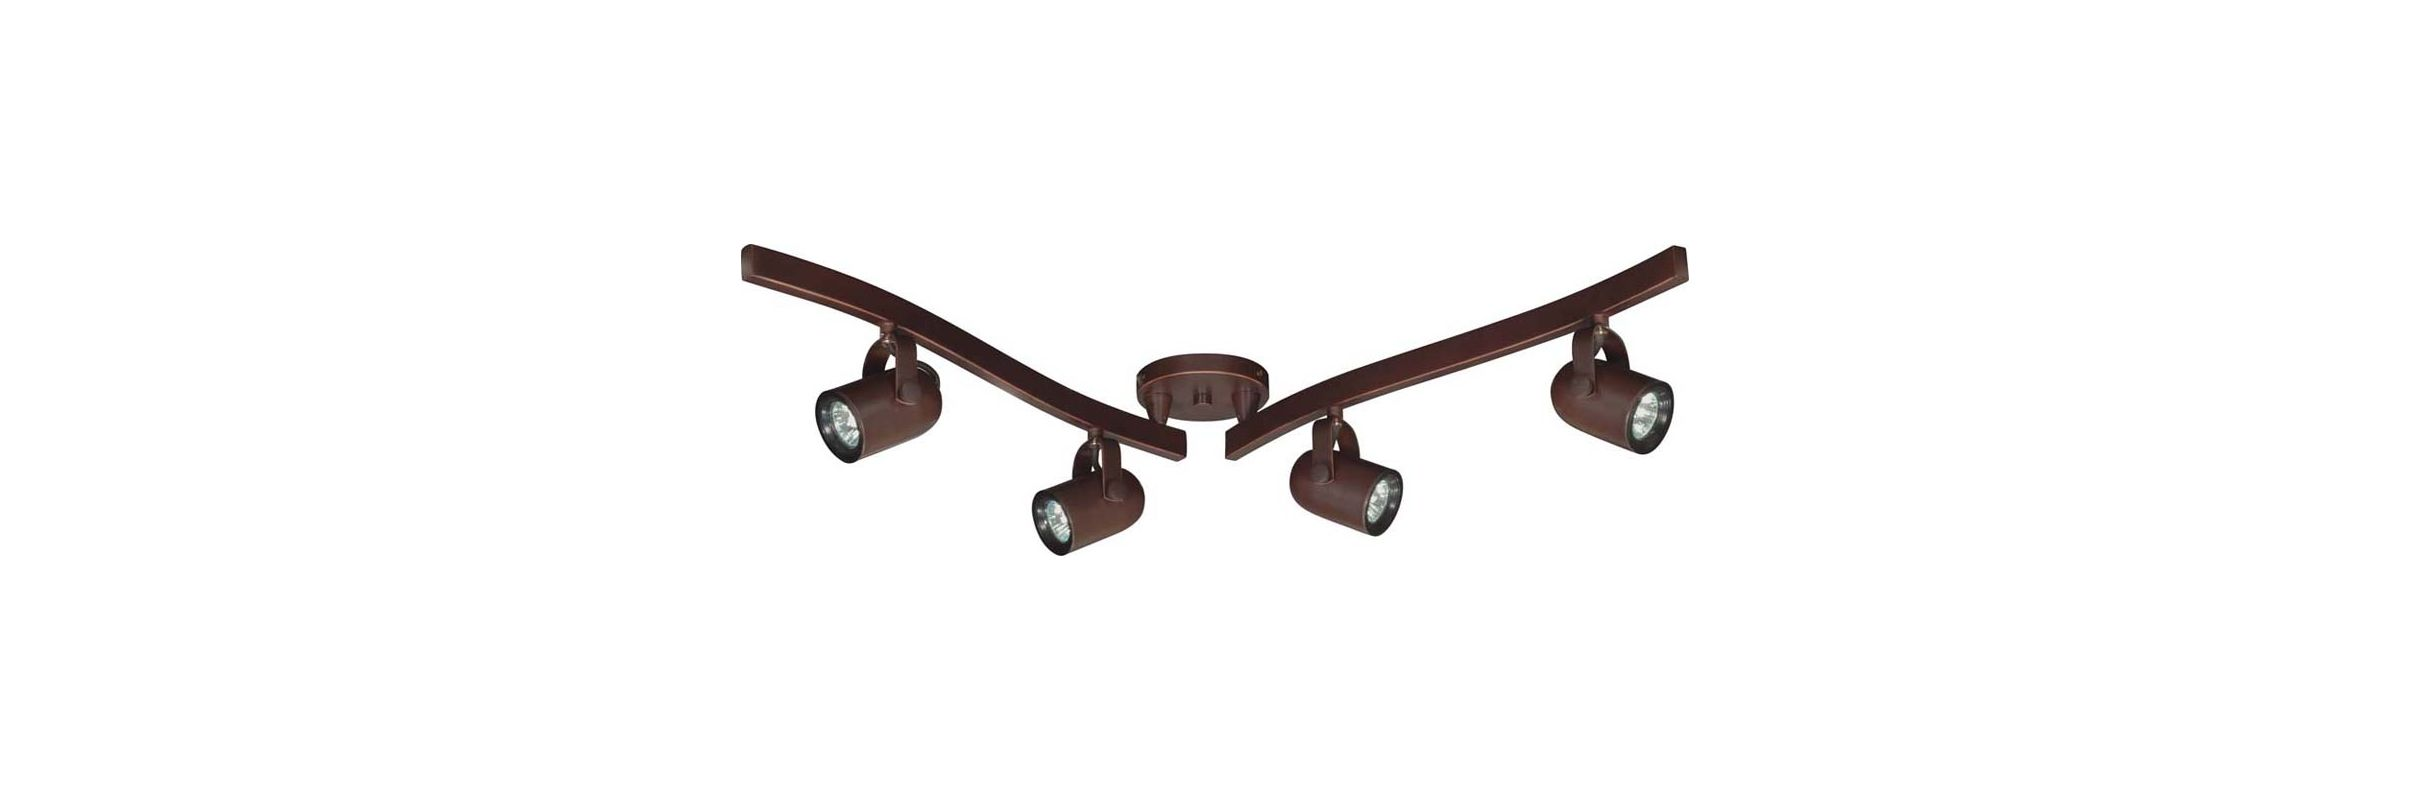 Nuvo Lighting TK383 Four Light MR16 Halogen Swivel Track Kit Russet